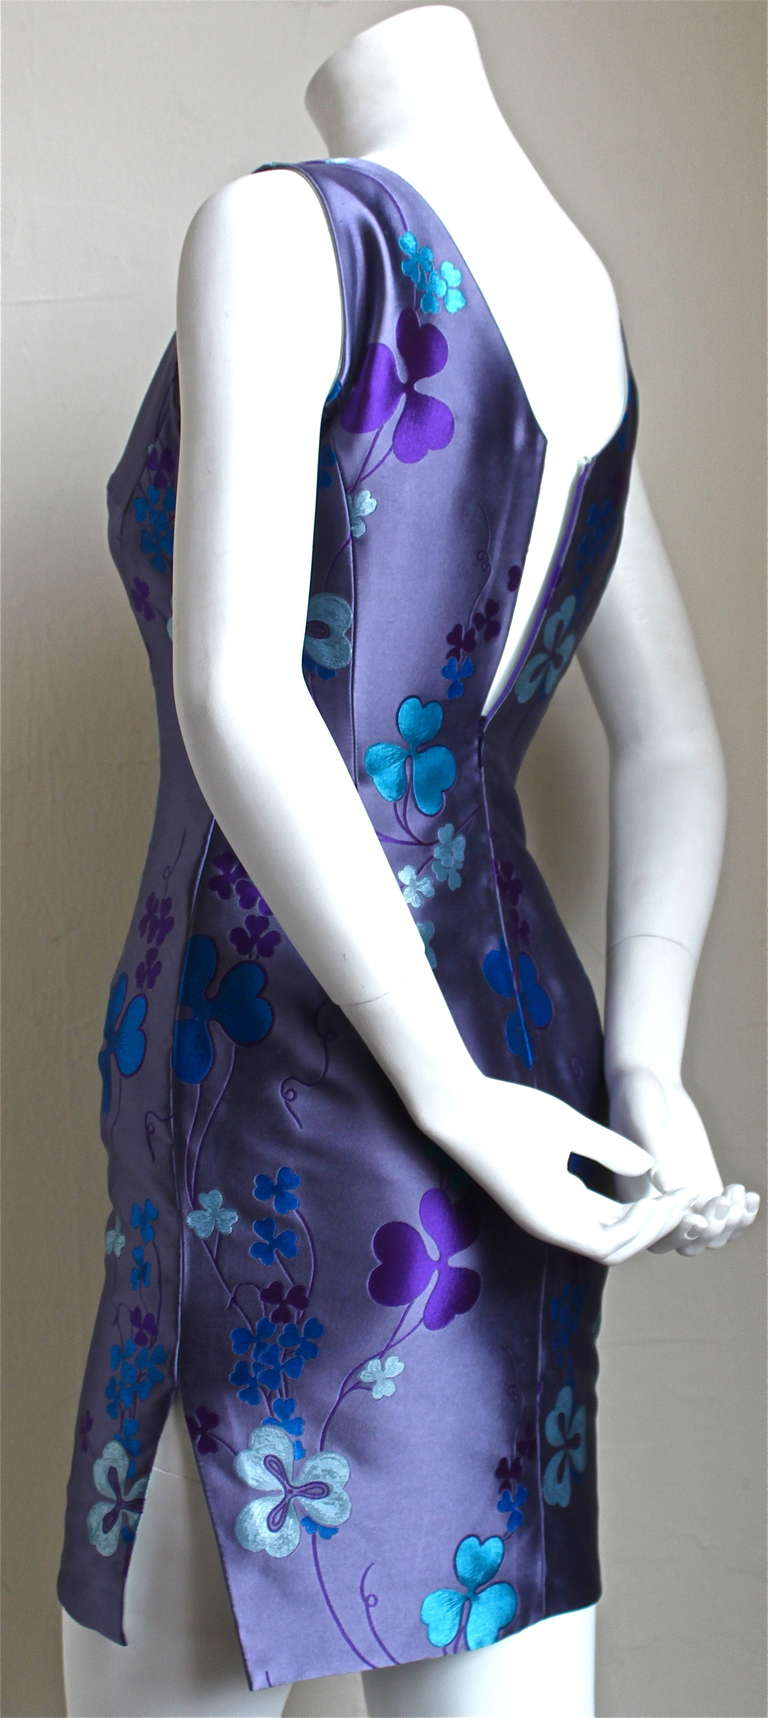 1993 ATELIER VERSACE couture silk floral mini dress In Excellent Condition For Sale In San Fransisco, CA